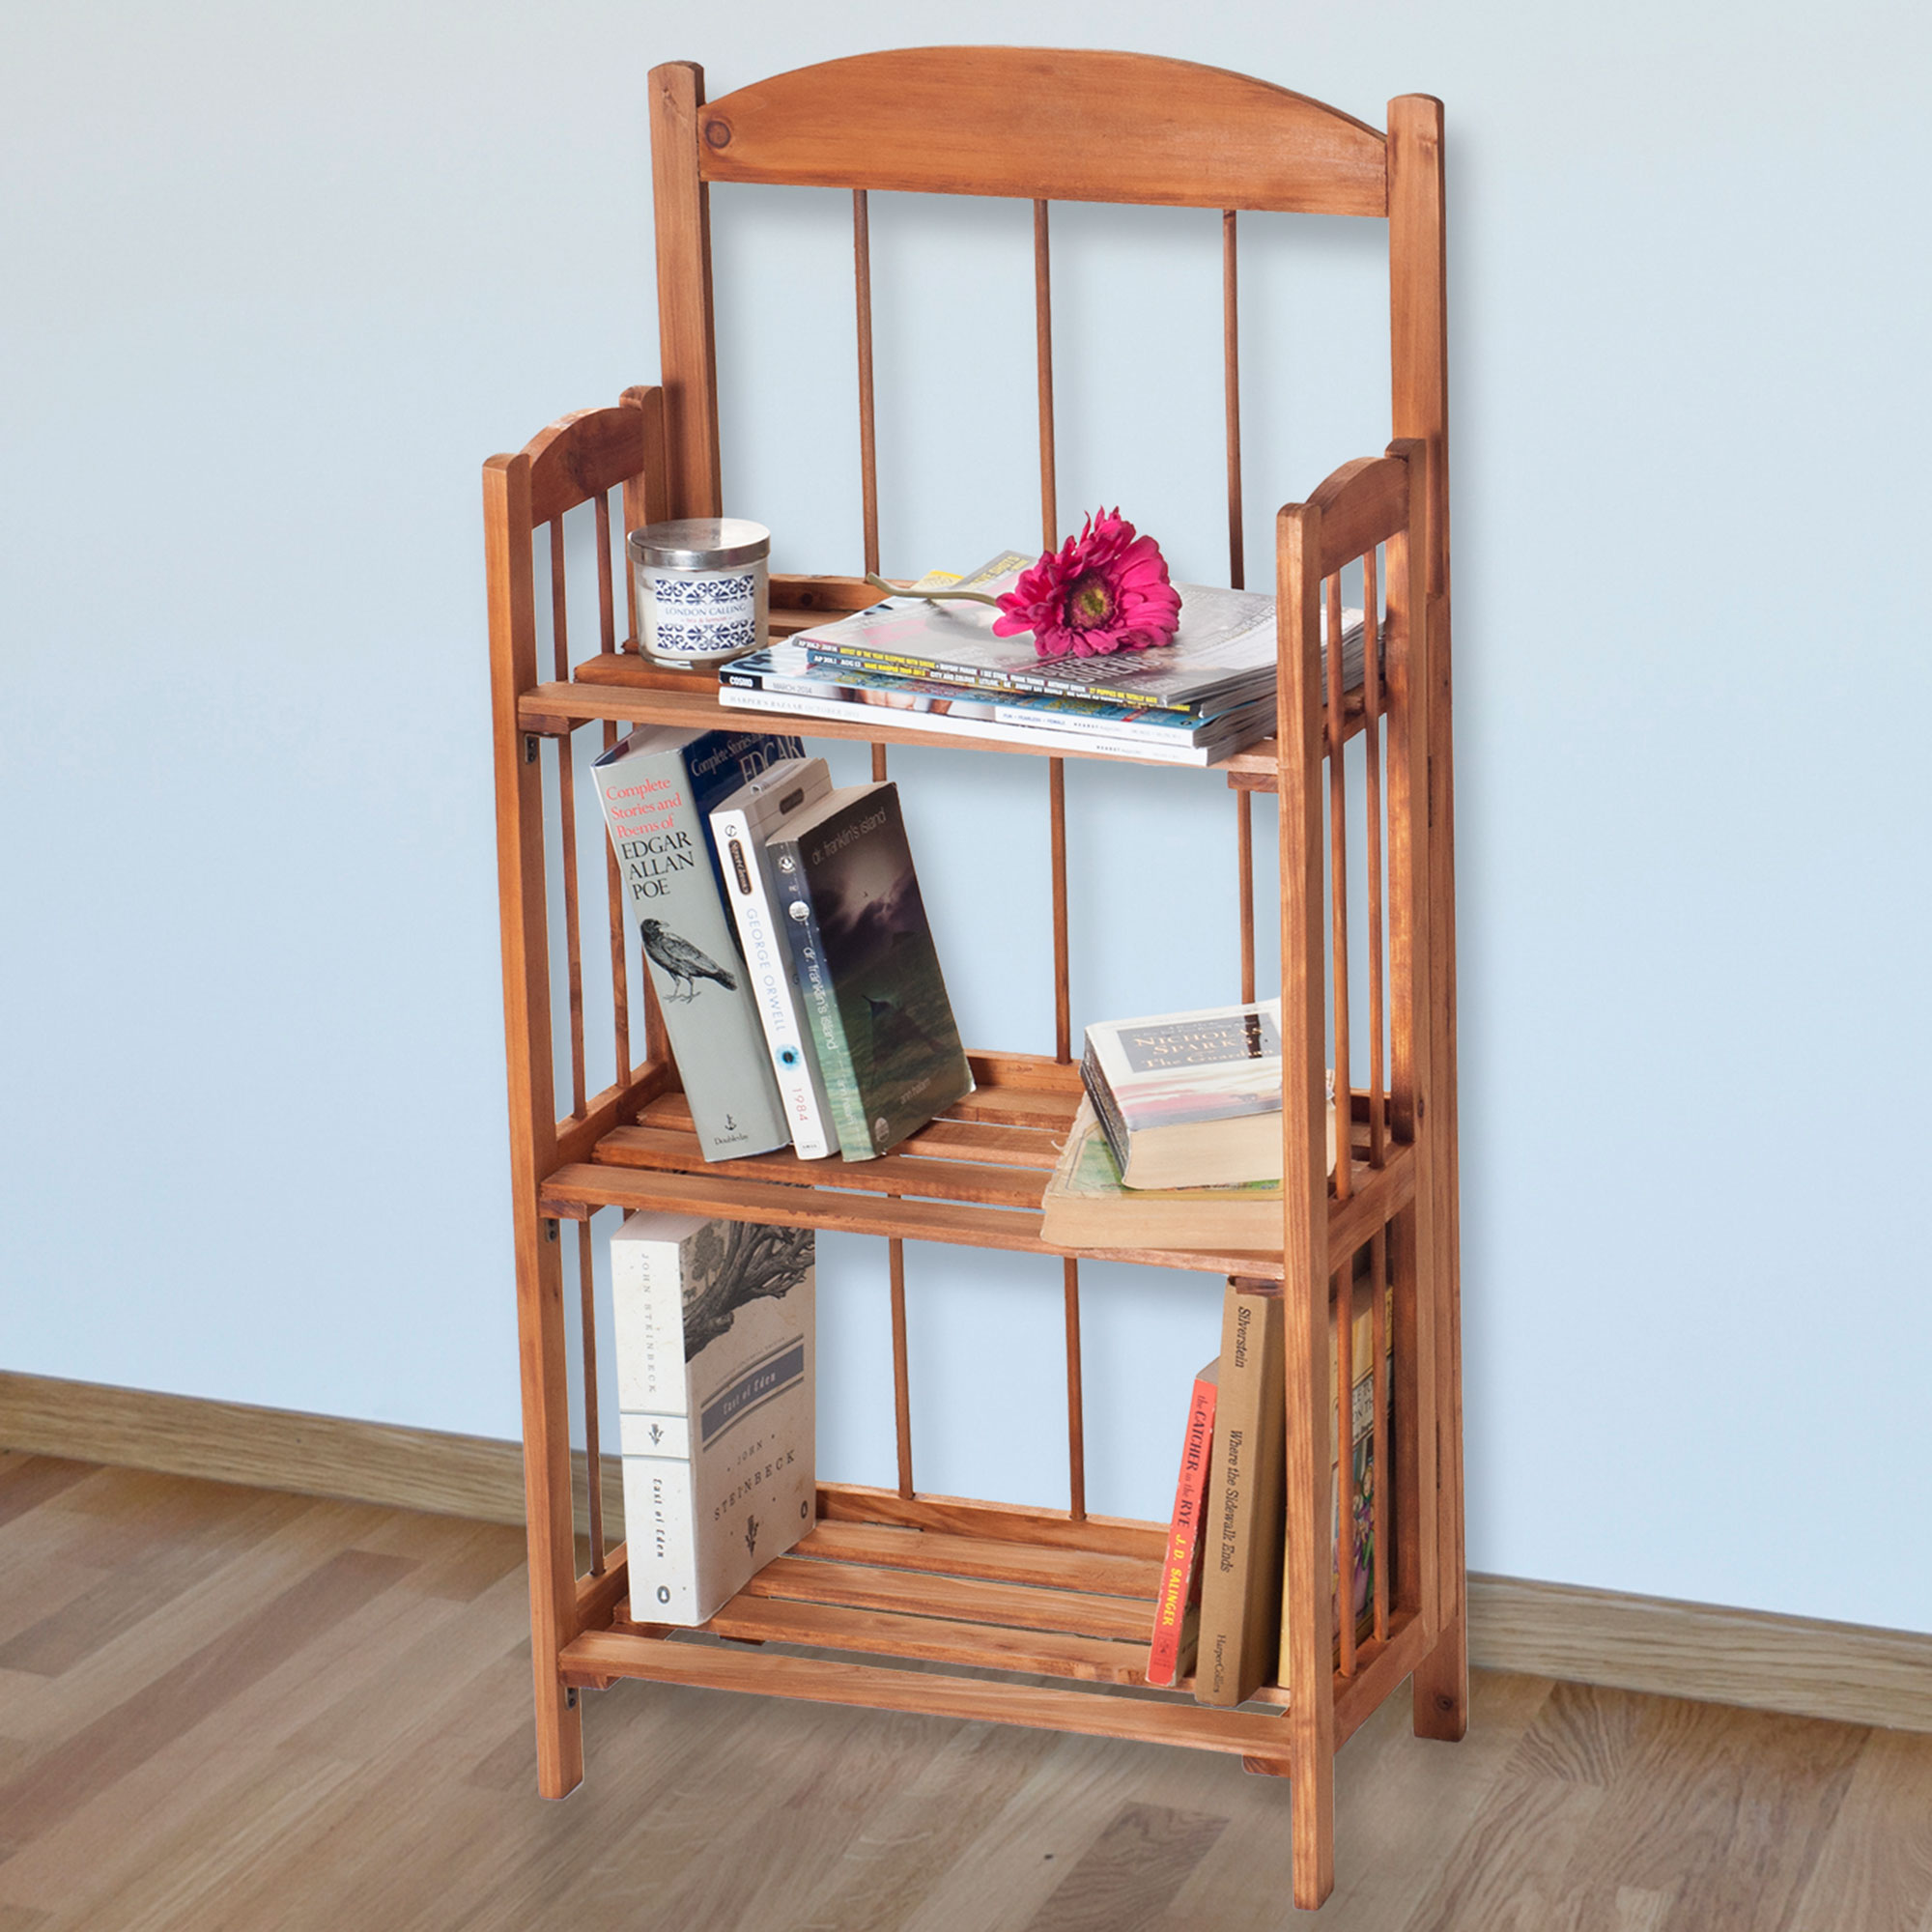 Three Tiered Shelf Light Wood Finish Bookcase by Lavish Home